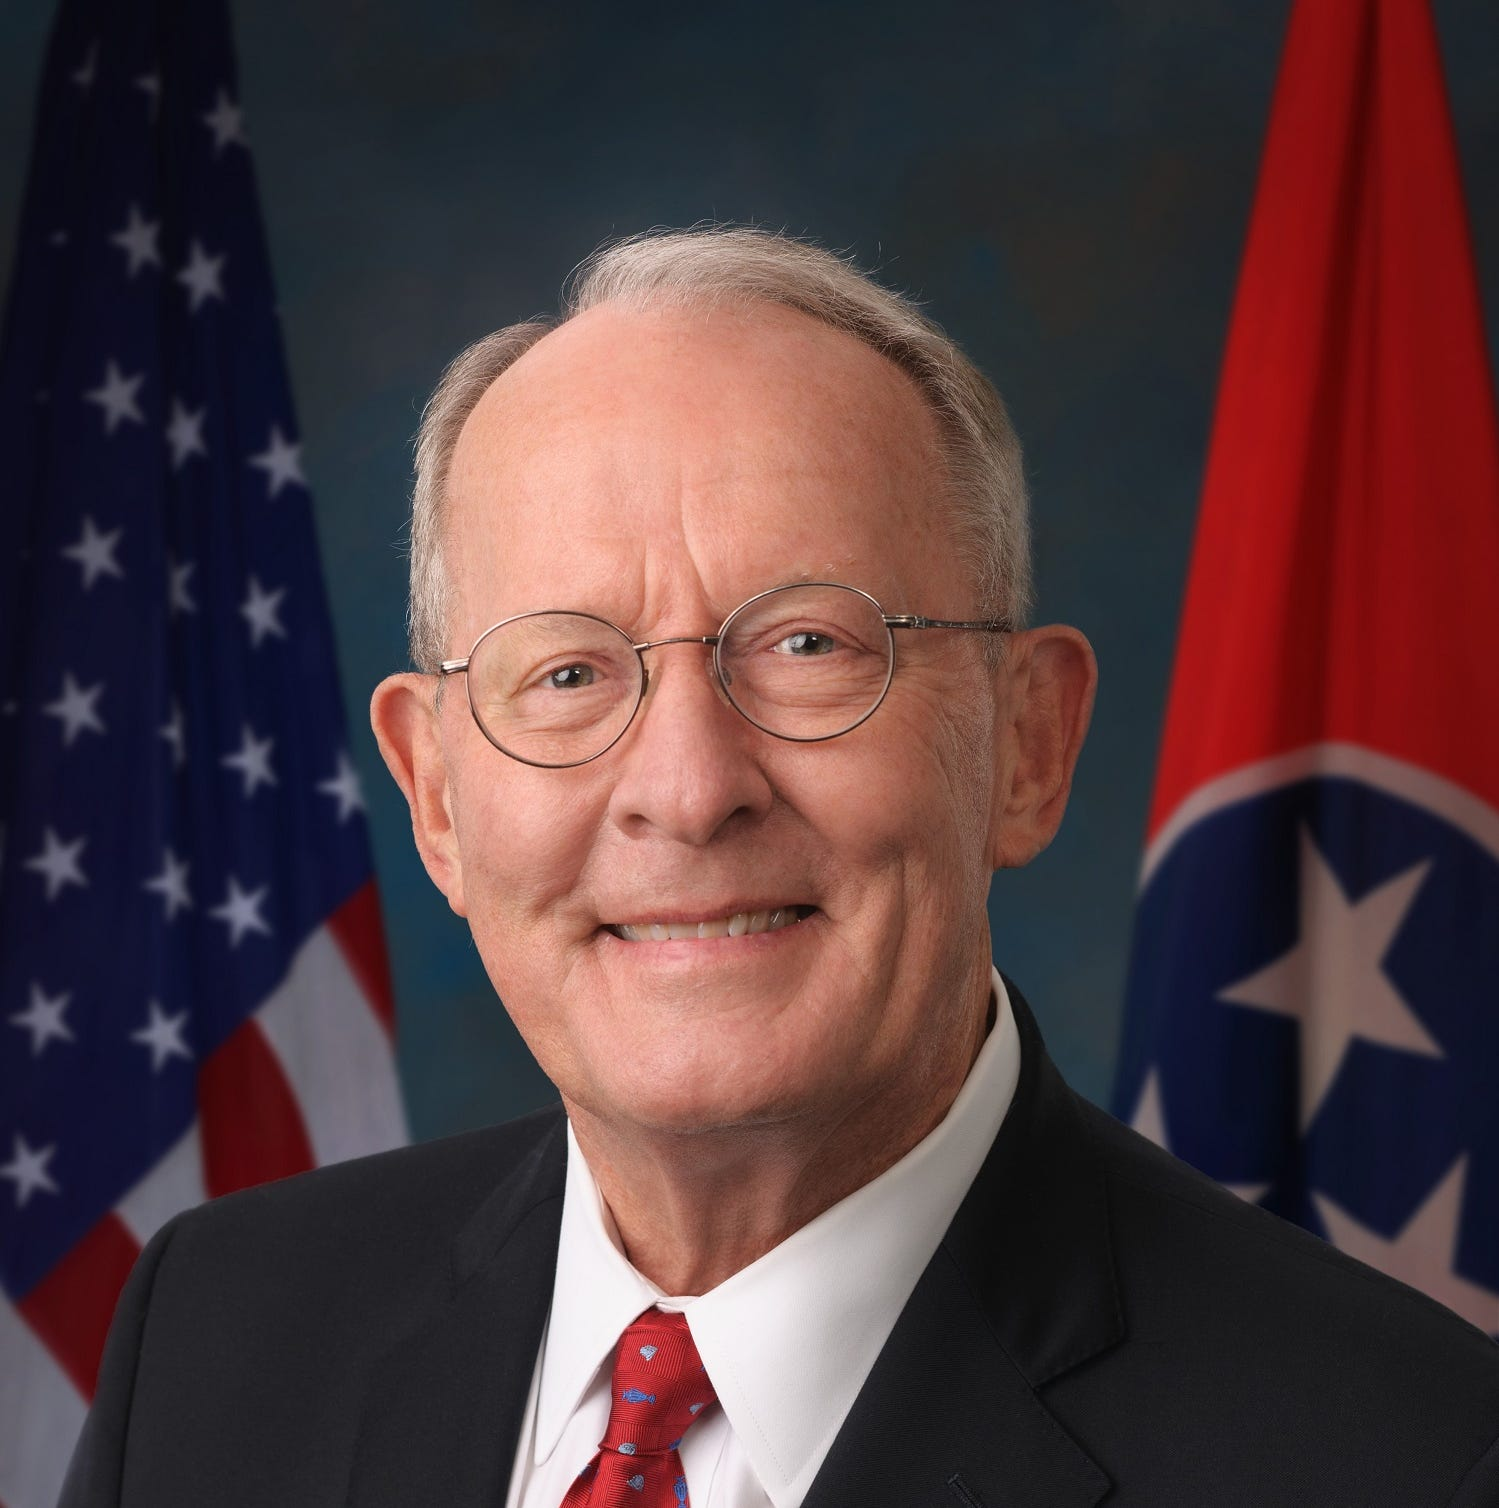 Tennessee Sen. Lamar Alexander votes against use of emergency funds for Trump's border wall